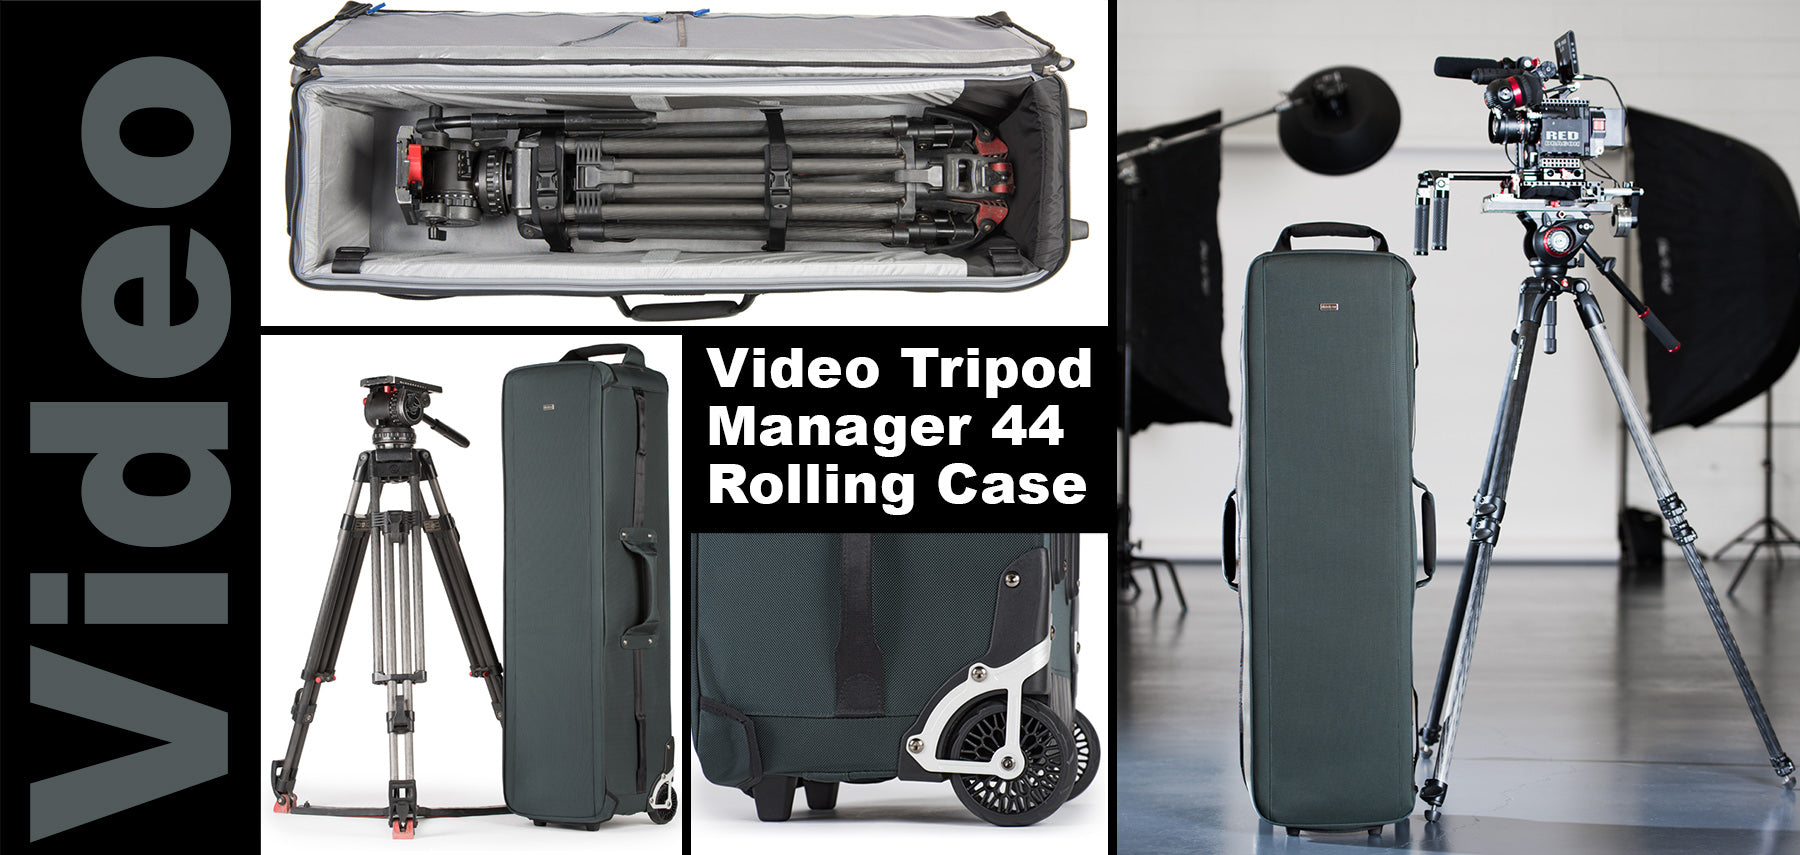 The Video Tripod Manager 44